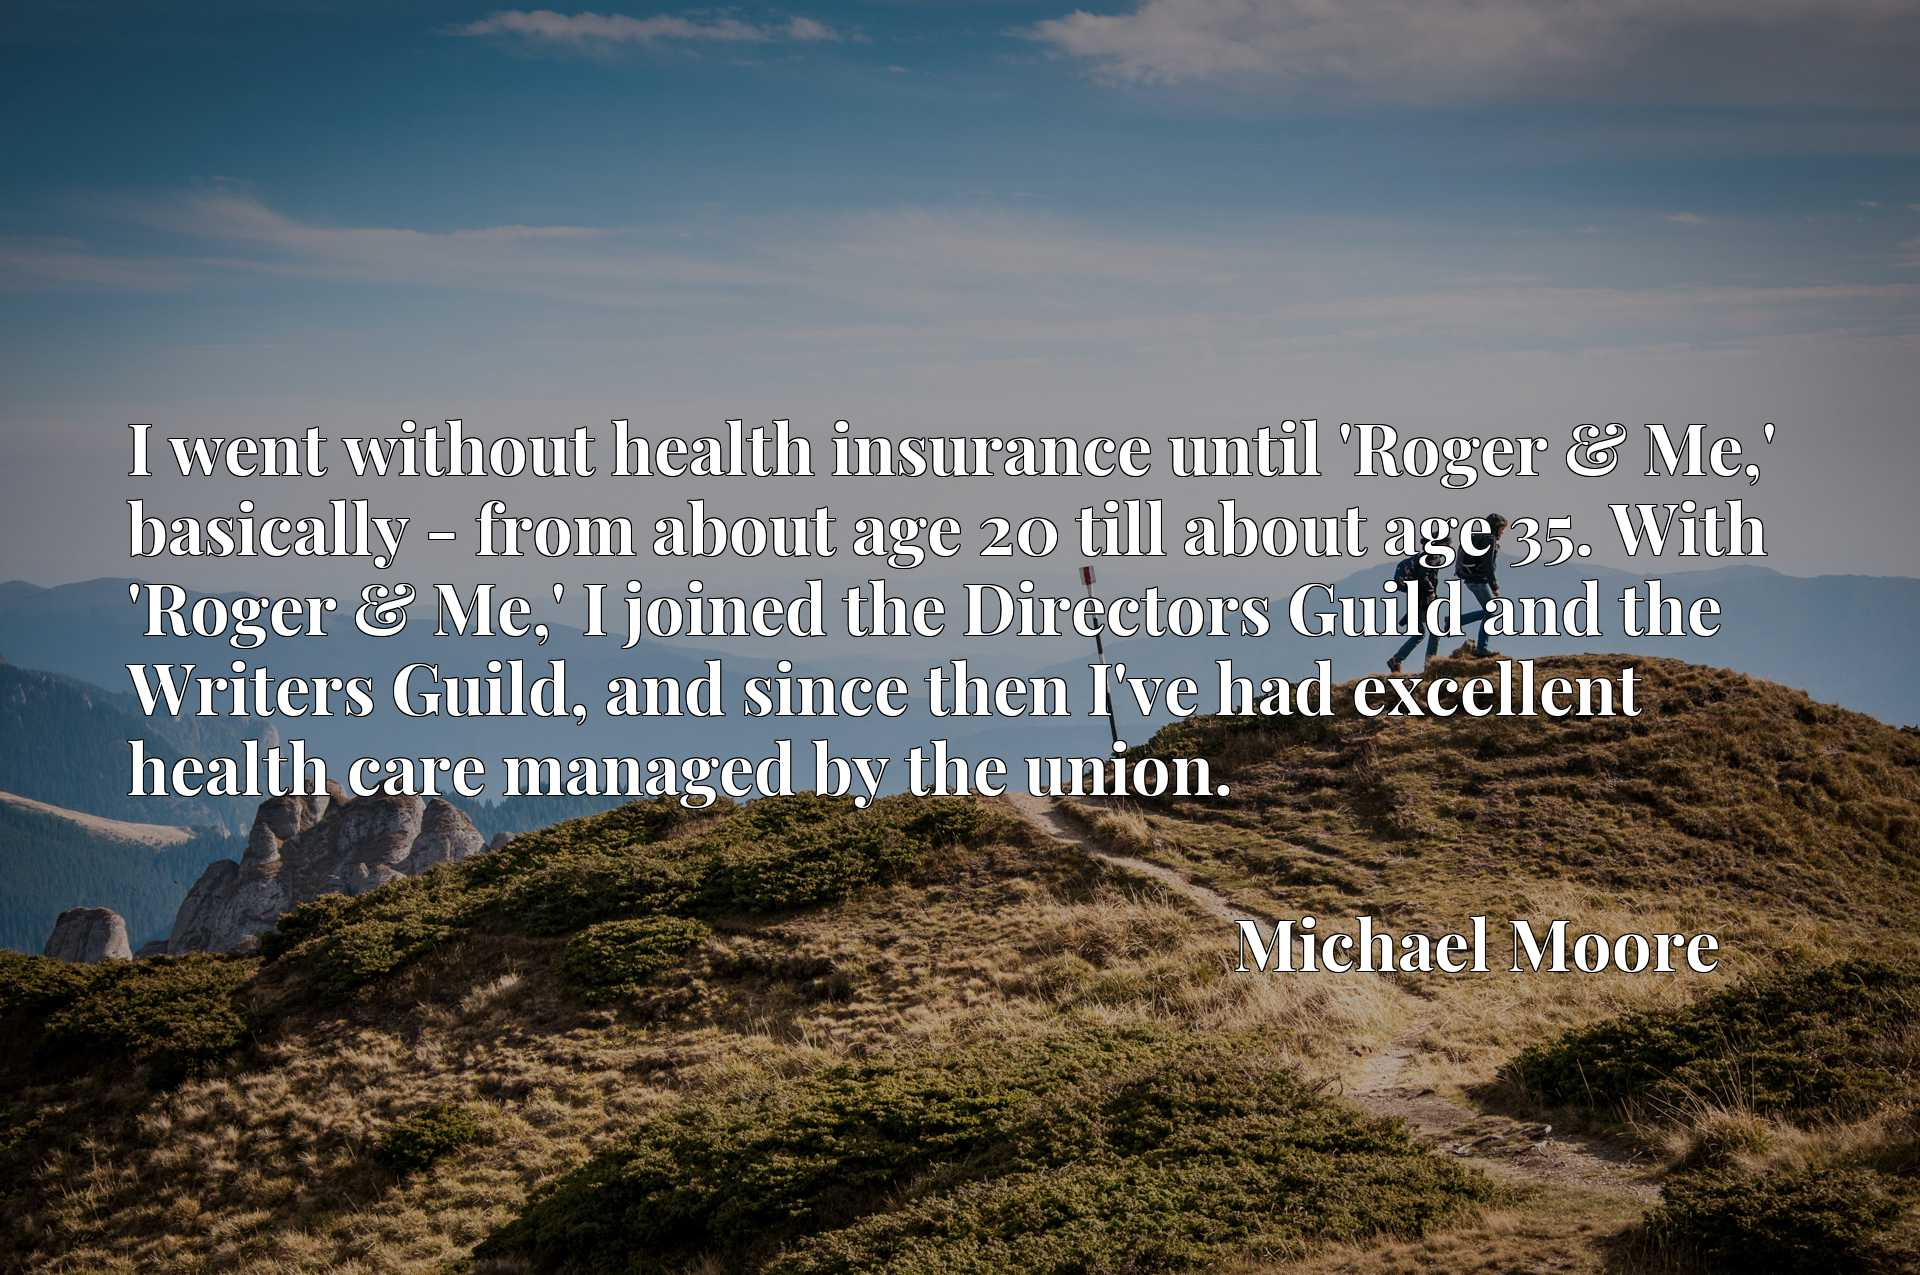 I went without health insurance until 'Roger & Me,' basically - from about age 20 till about age 35. With 'Roger & Me,' I joined the Directors Guild and the Writers Guild, and since then I've had excellent health care managed by the union.